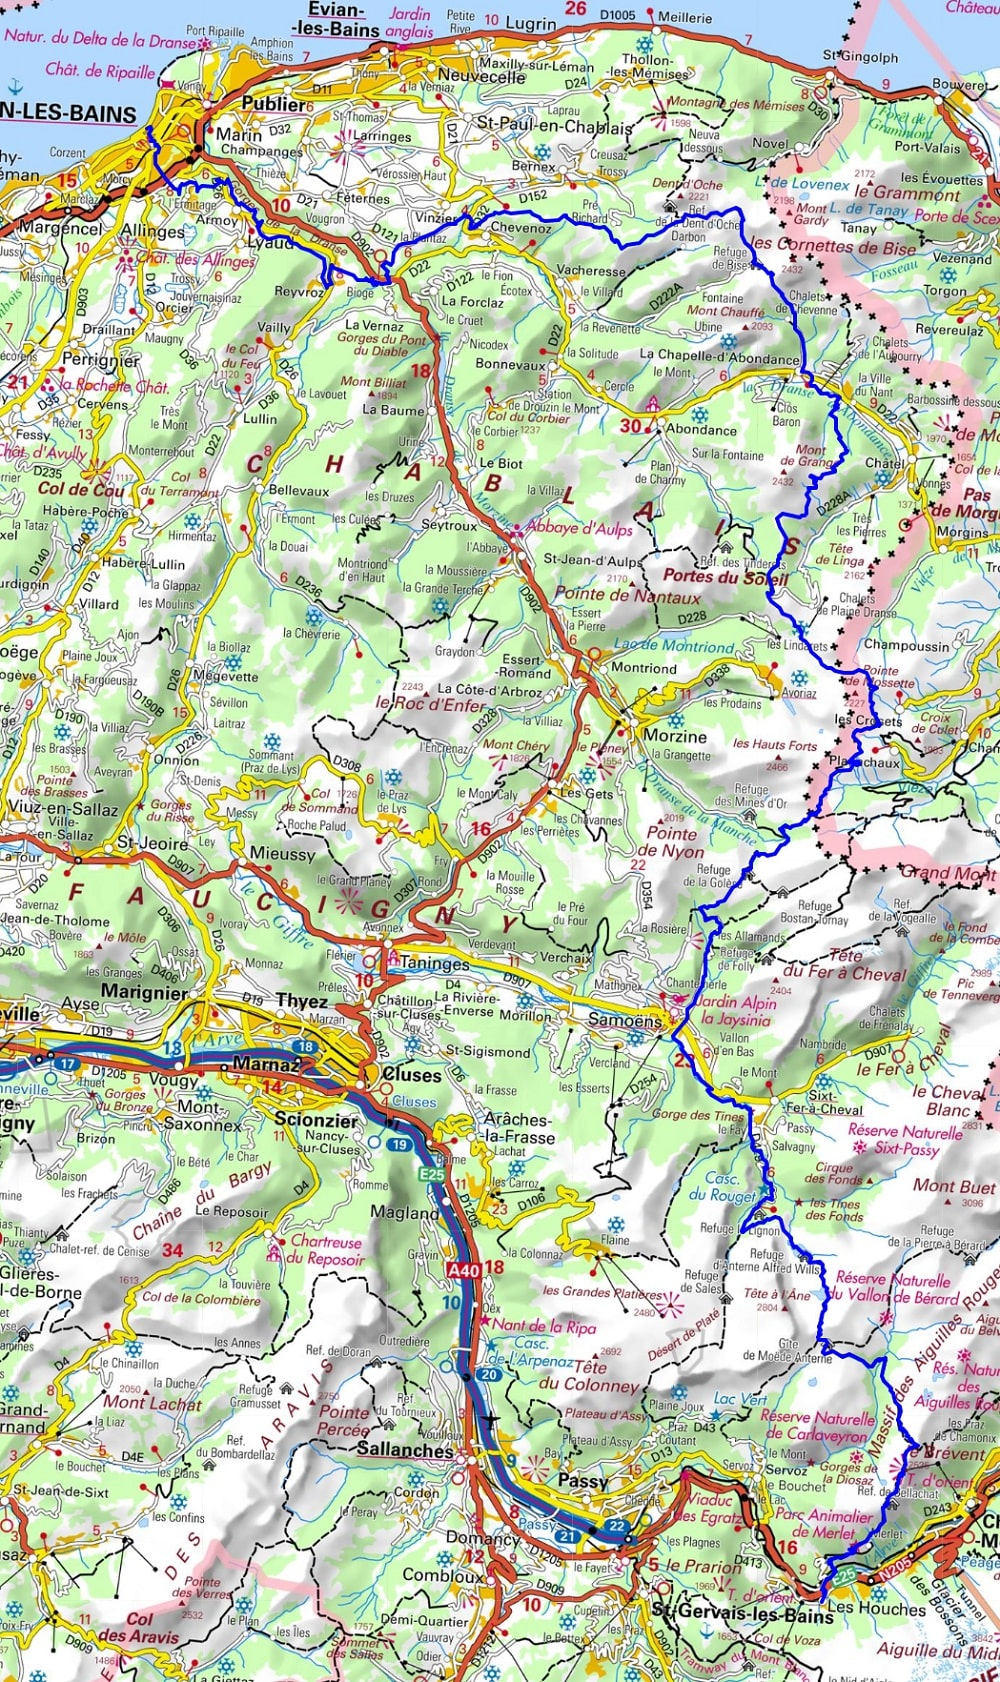 GR5 Hiking from Thonon-les-Bains to Les Houches (Haut-Savoie)